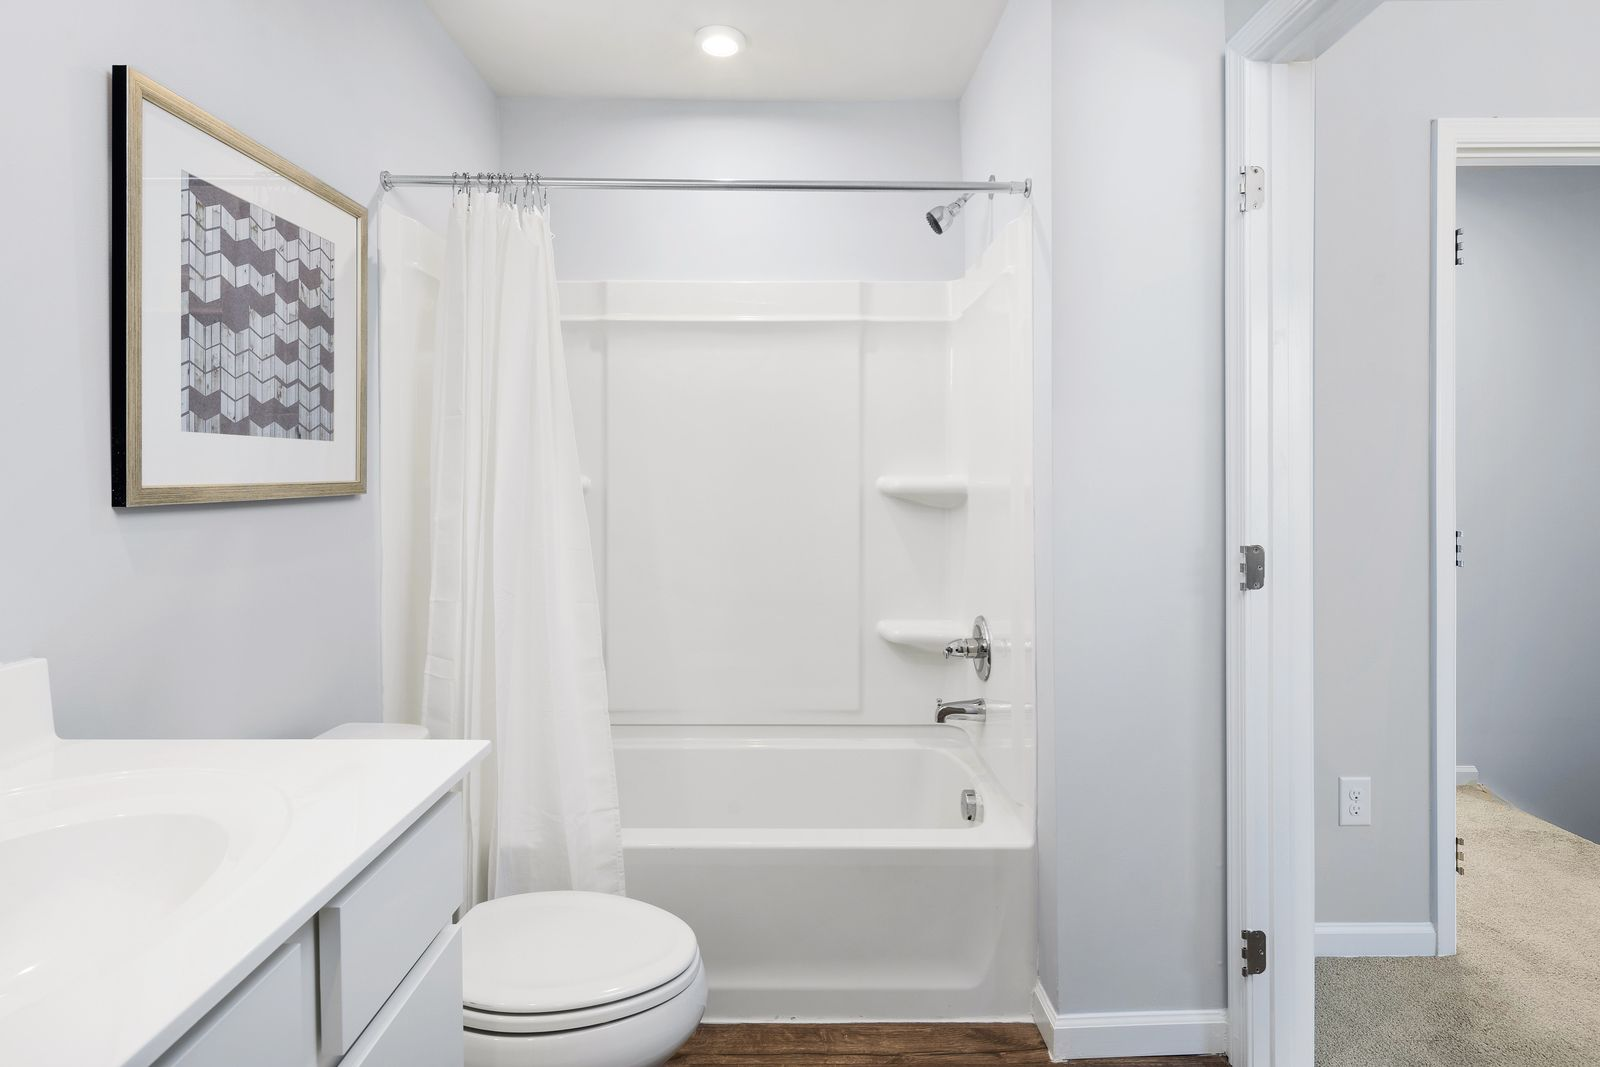 Bathroom featured in the Juniper By Ryan Homes in Sussex, DE